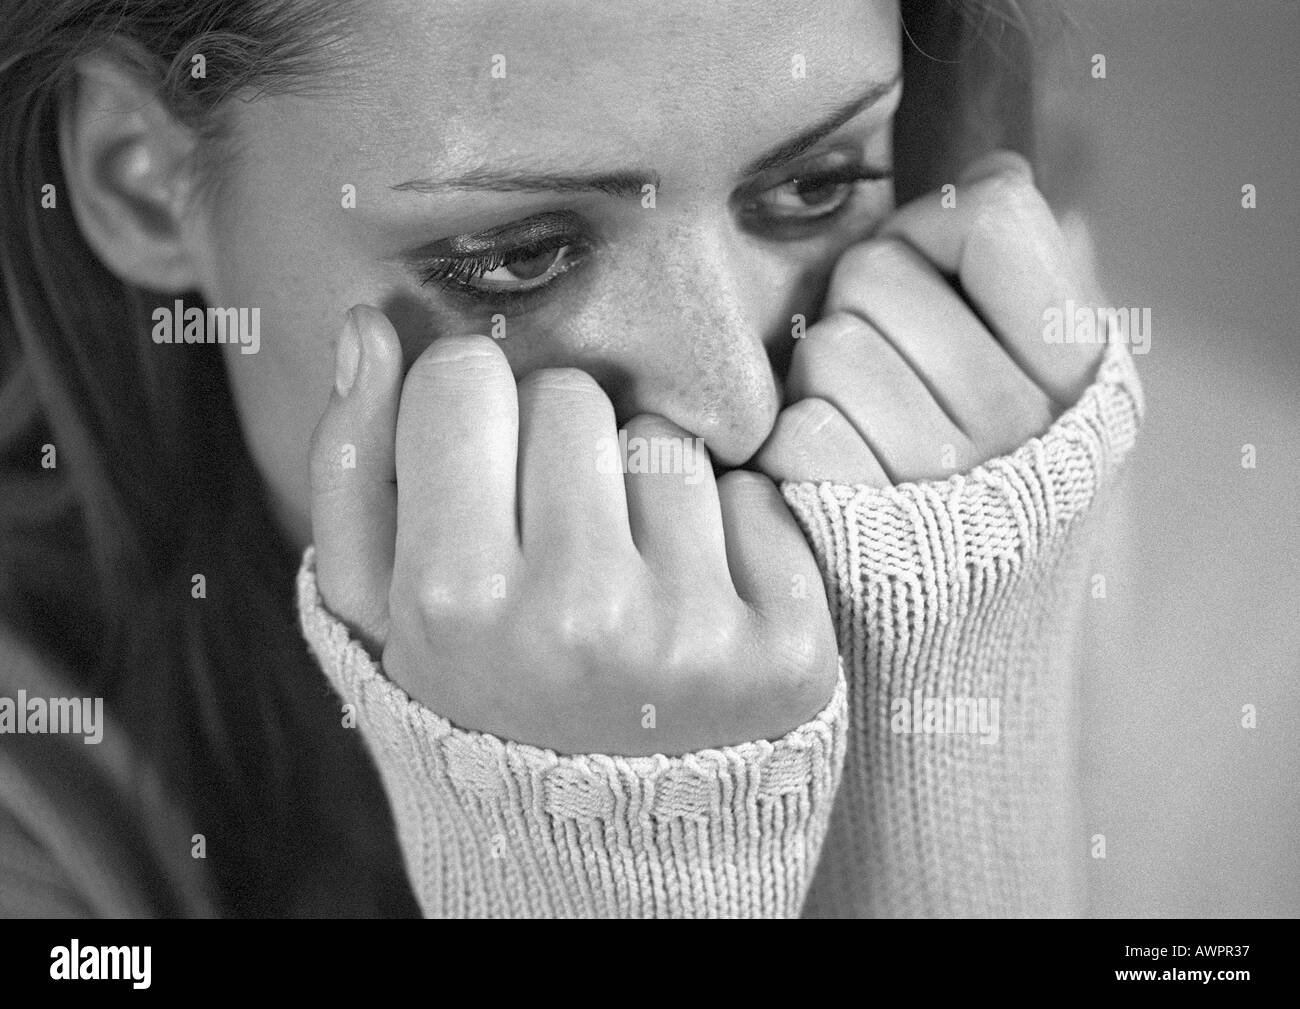 Woman with hands covering lower face, close-up, b&w - Stock Image